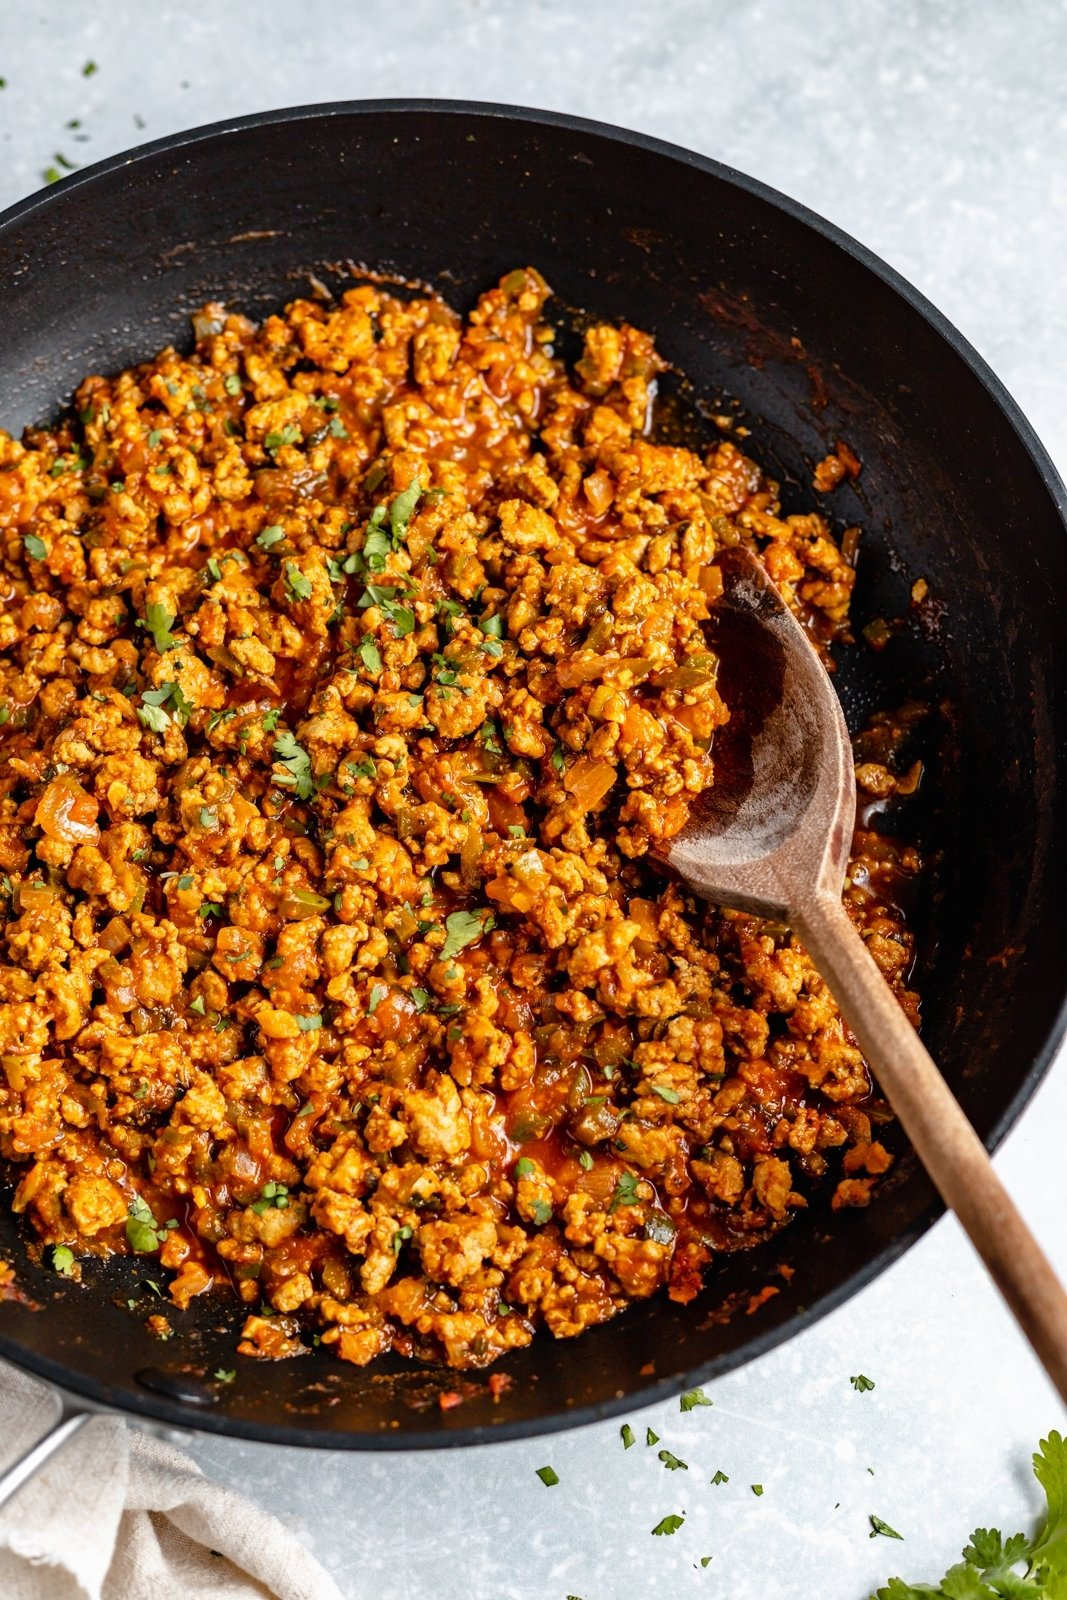 cooking homemade turkey picadillo in a skillet